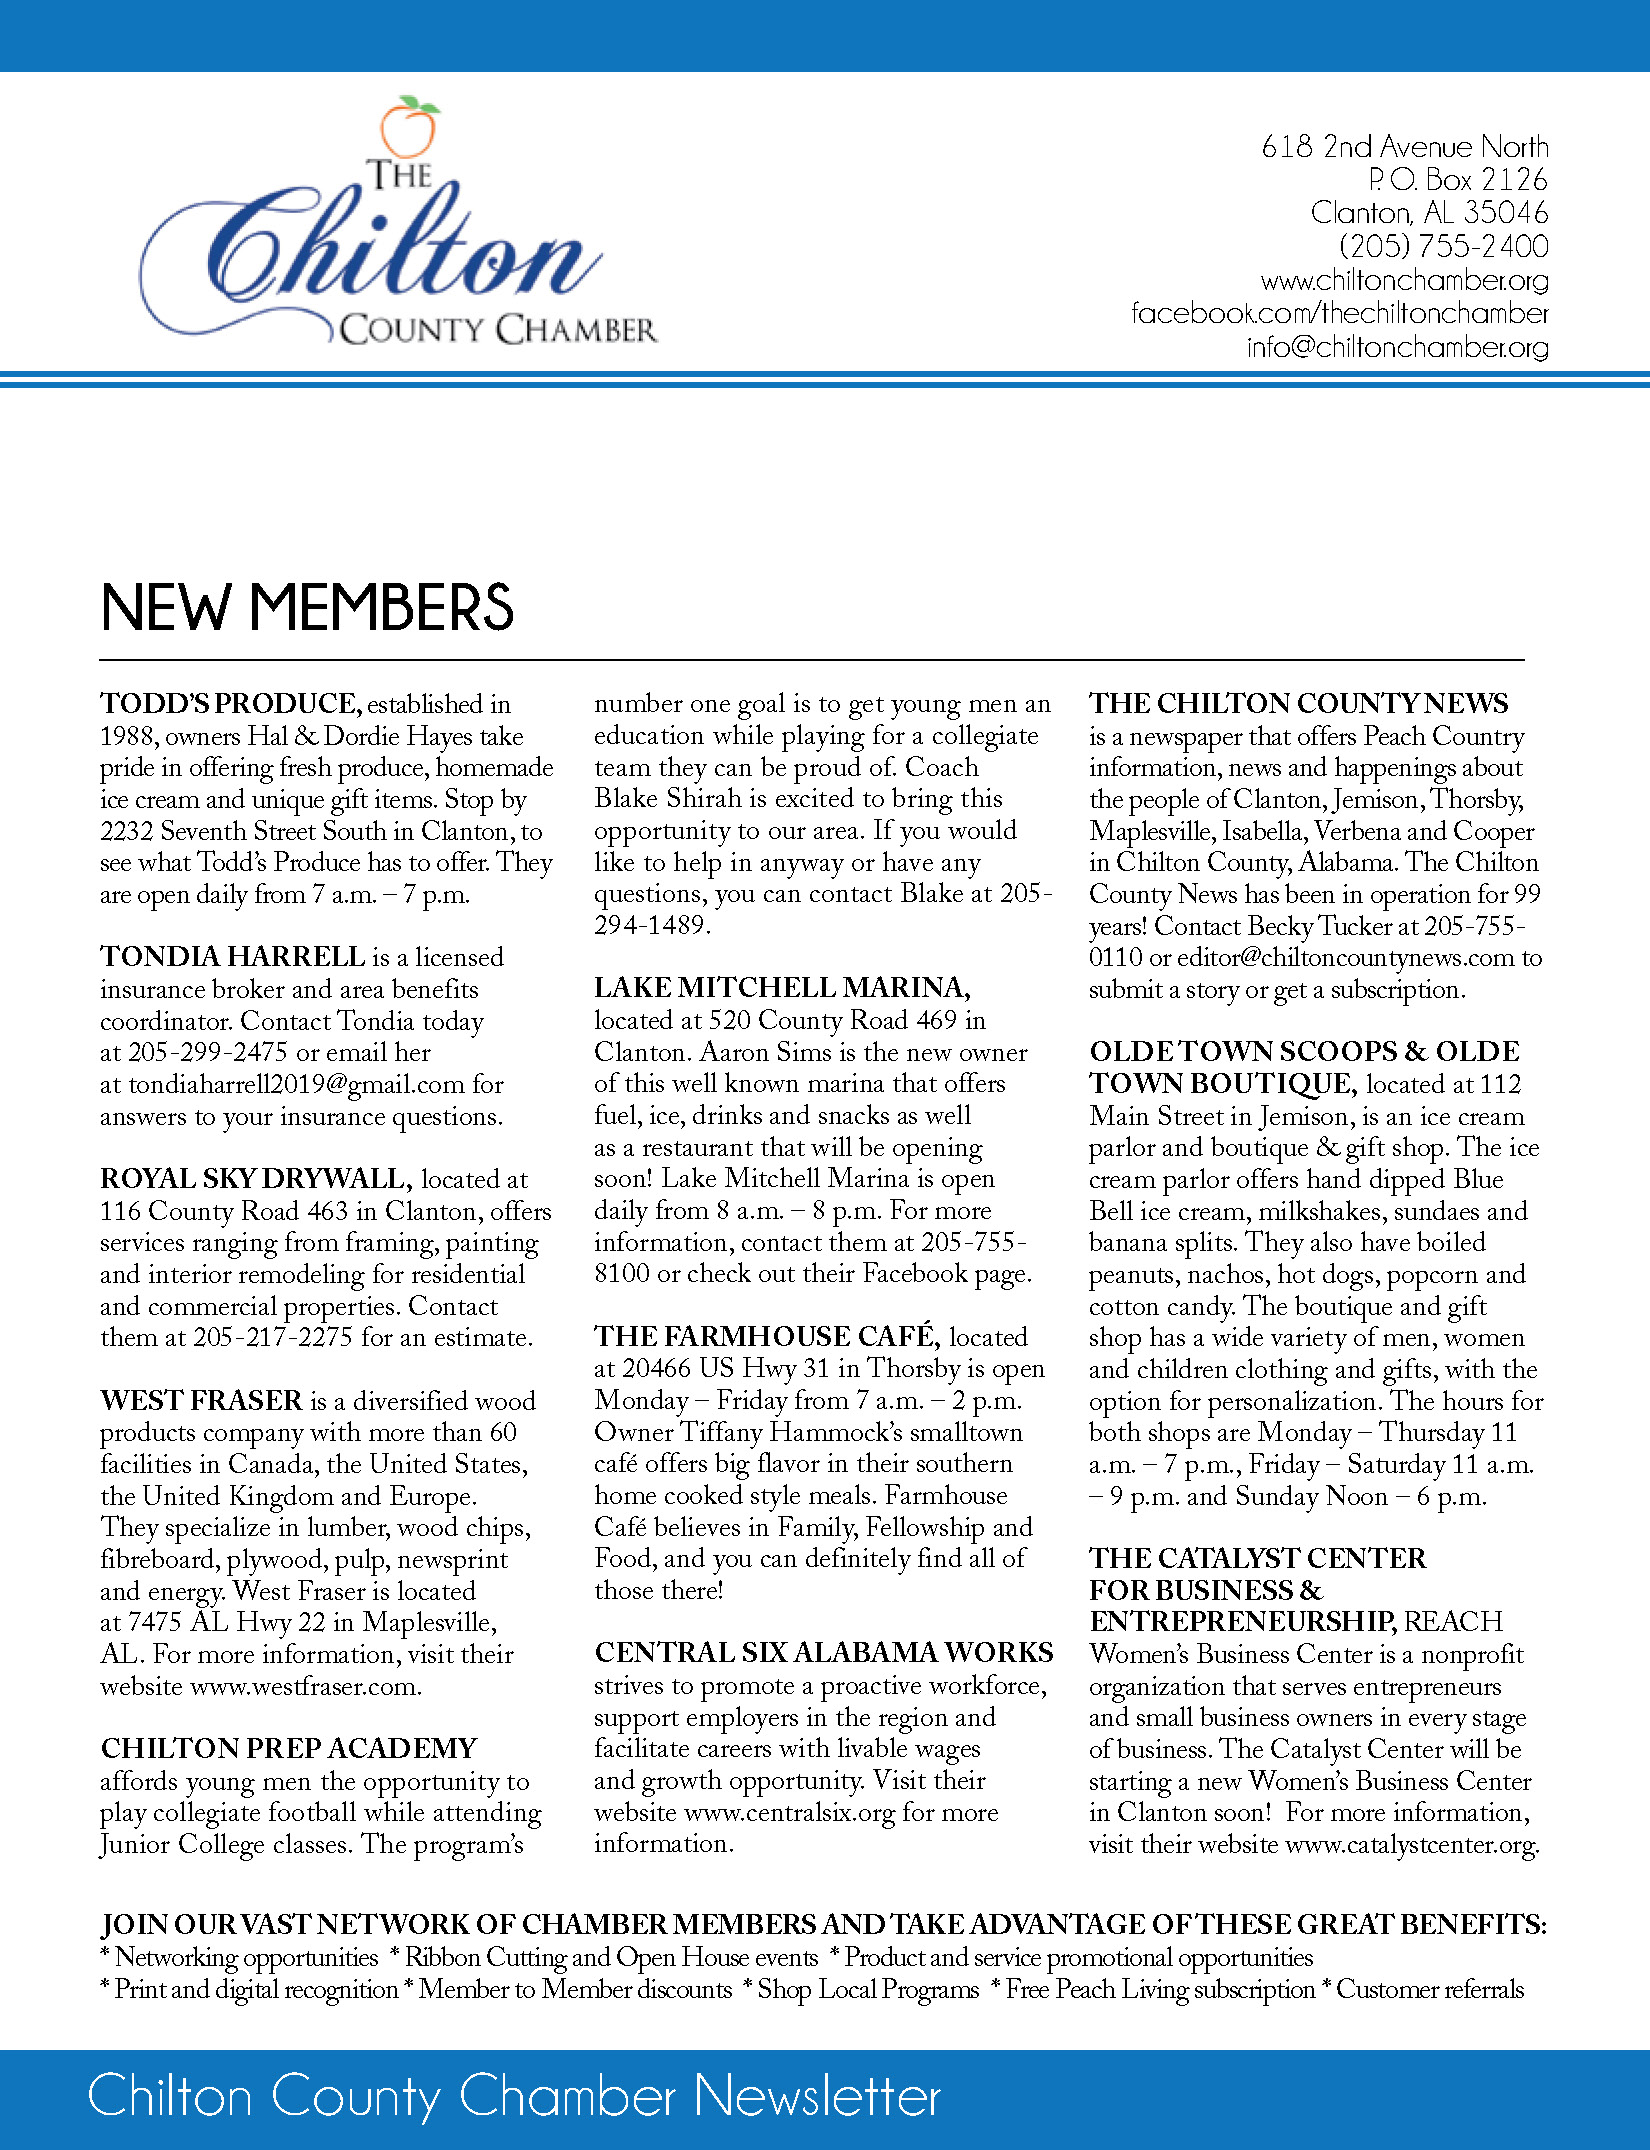 July-Chamber-newsletter-_Page_1.jpg